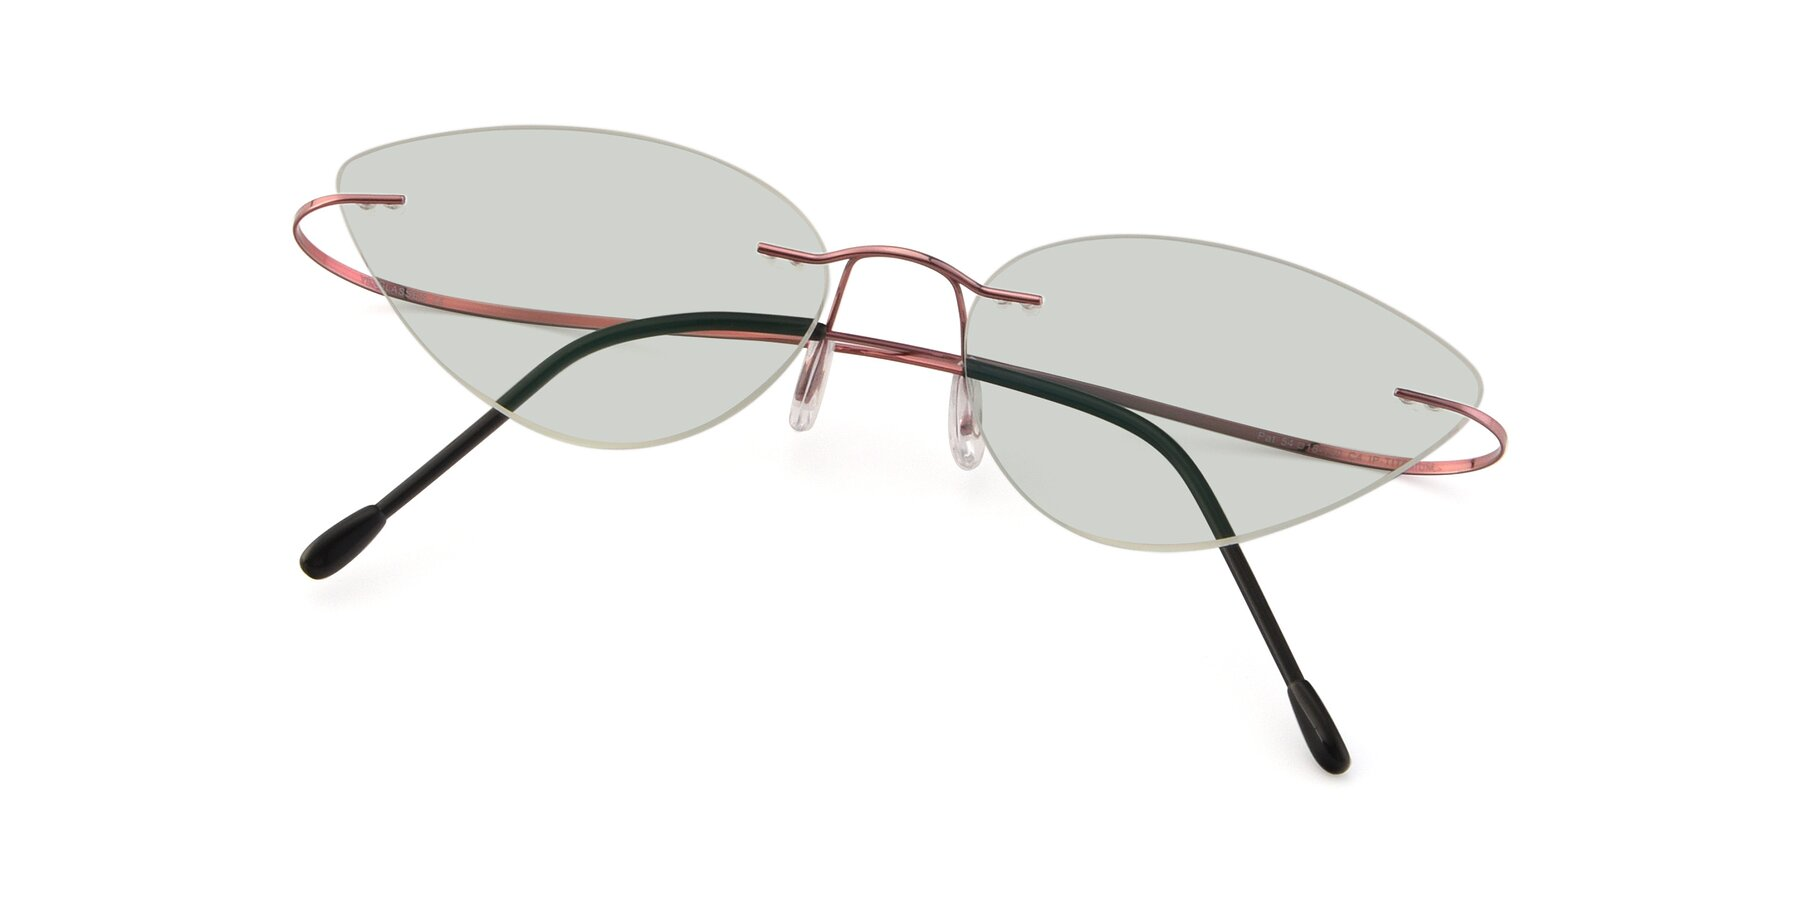 View of Pat in Light Pink with Light Green Tinted Lenses